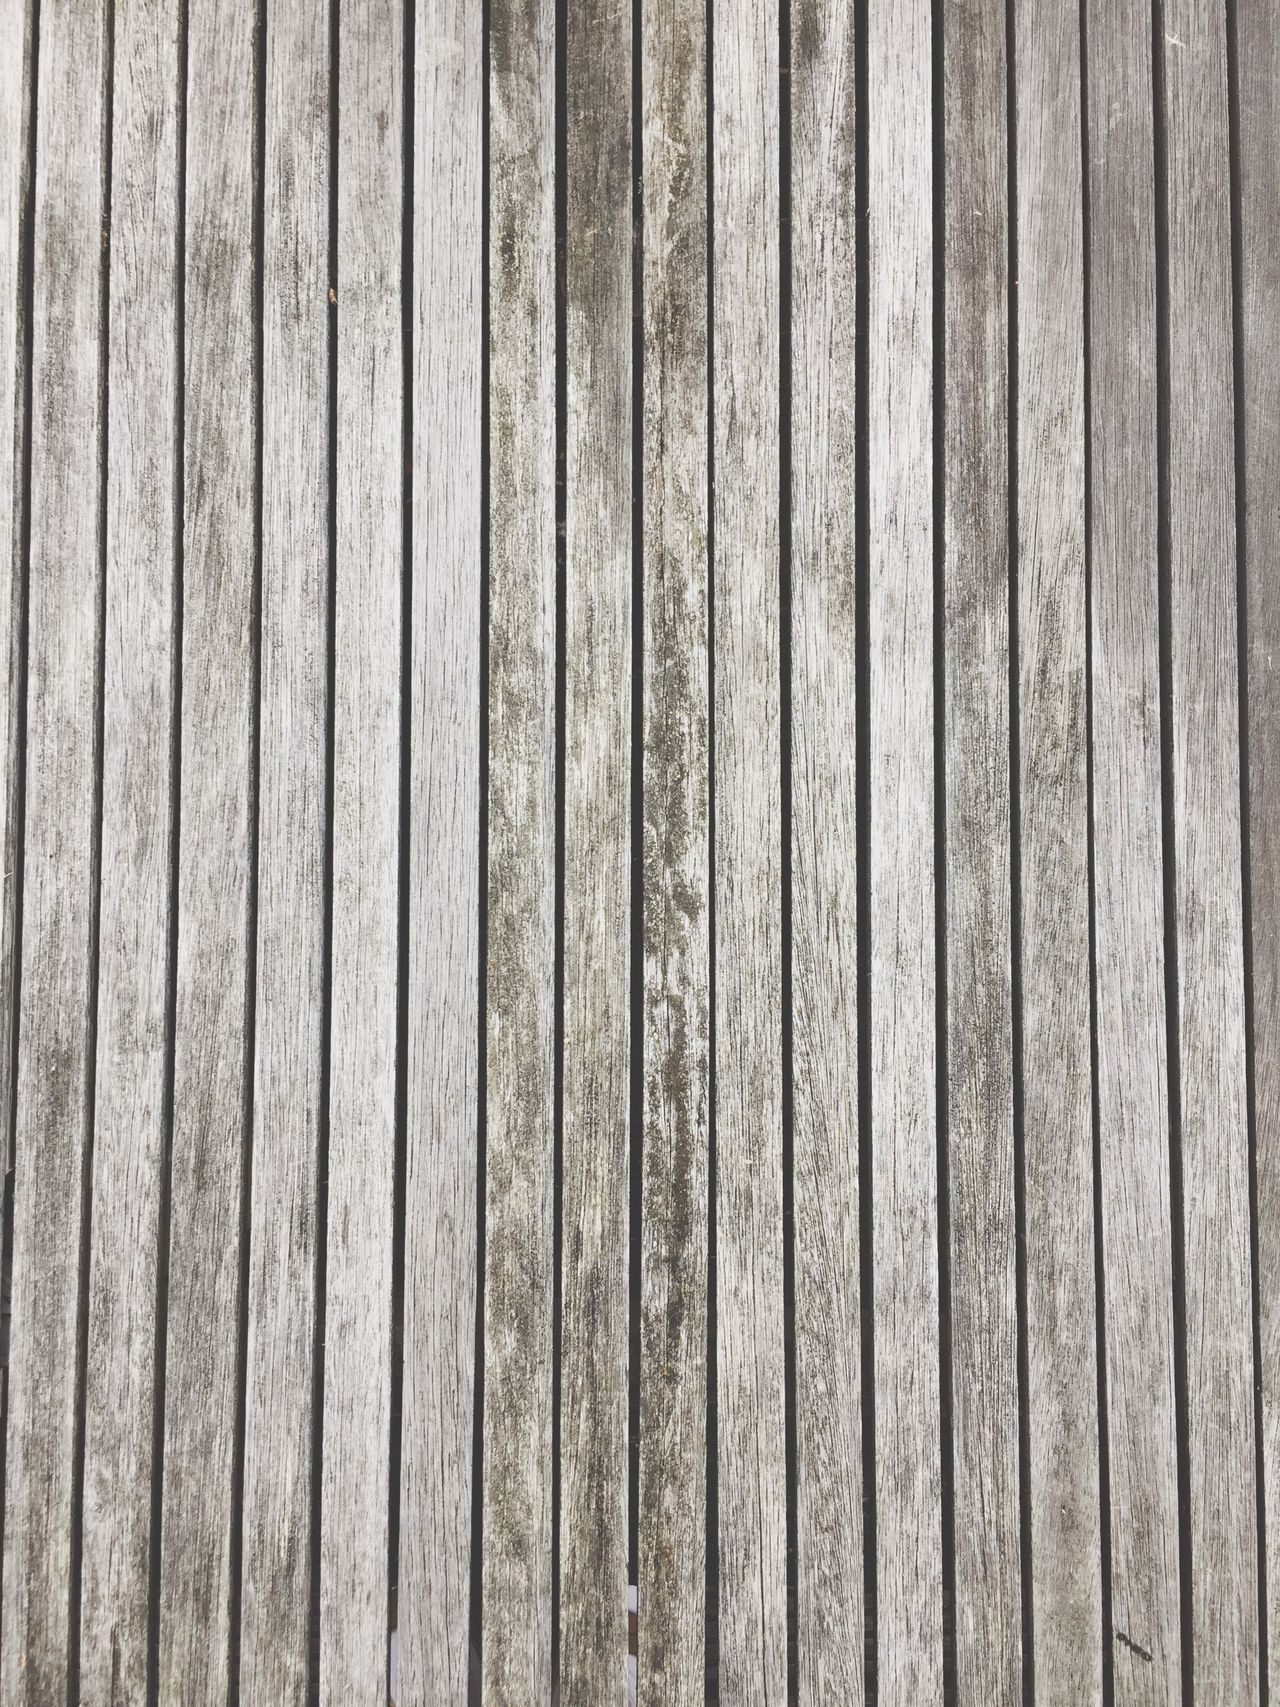 Backgrounds Wood - Material Pattern Textured  Material Close-up Abstract Hardwood Striped Wood Grain Weathered Outdoors